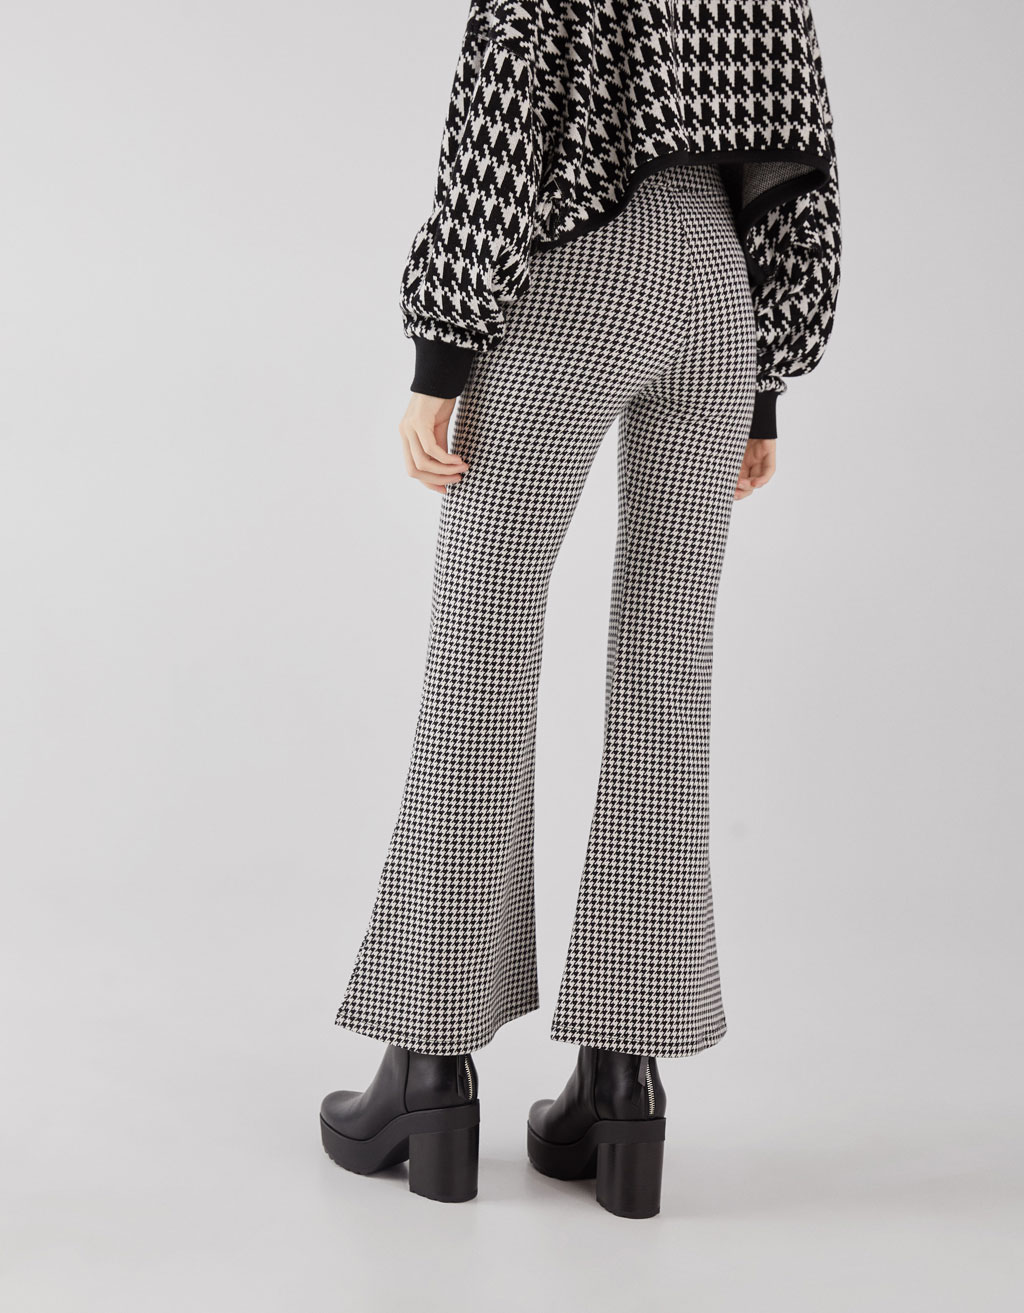 5fb67b80f3e Houndstooth flared trousers Houndstooth flared trousers ...